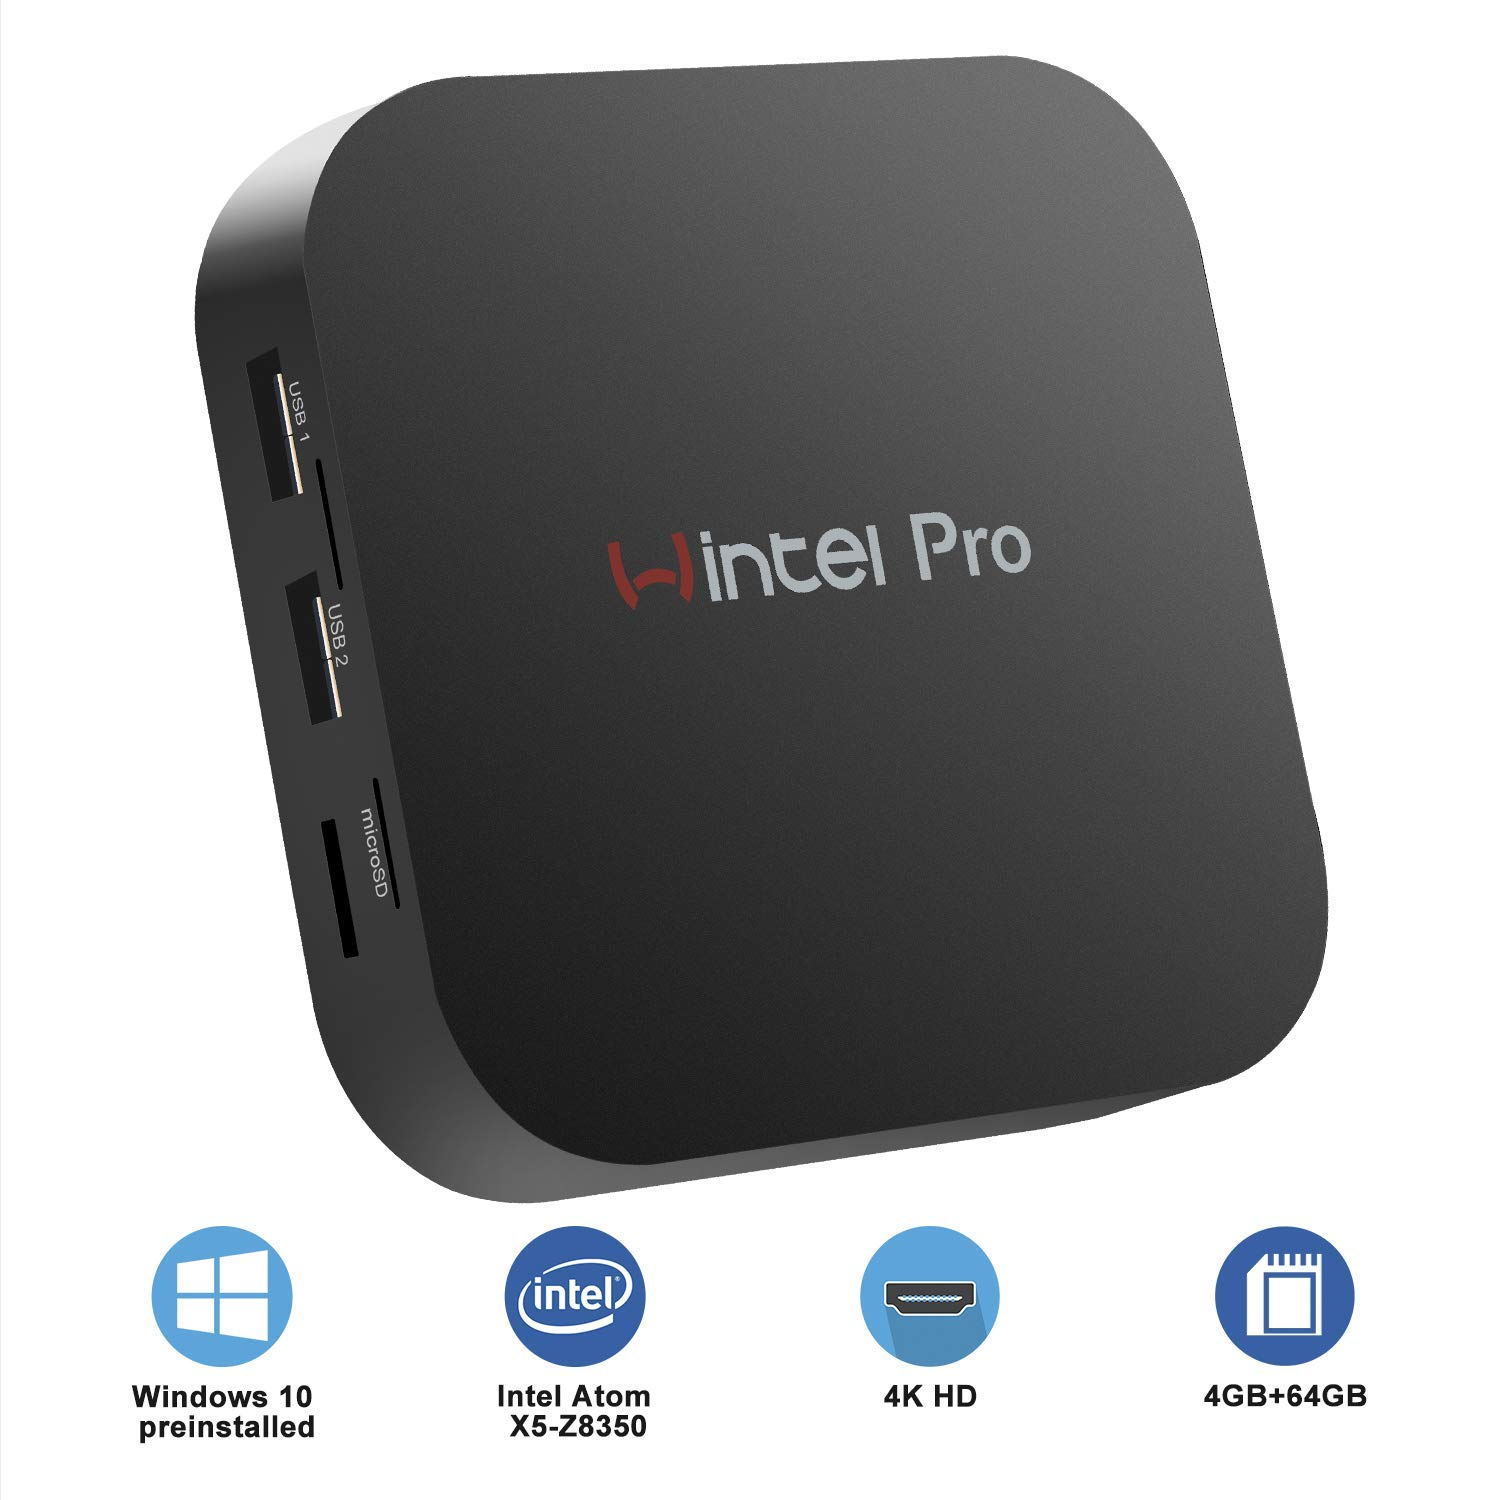 TALLA 4GB+64GB/Windows 10 Pro. Mini PC - Mini Ordenador Windows 10 Pro(64 bits)sin Ventilador,Ordenadores de sobremesa(Intel Atom x5-Z8350 de DDR3 4GB+64GB eMMC Gráfico HD WiFi Dual 2.4G+5G BT 4.2 1000Mbps LAN)